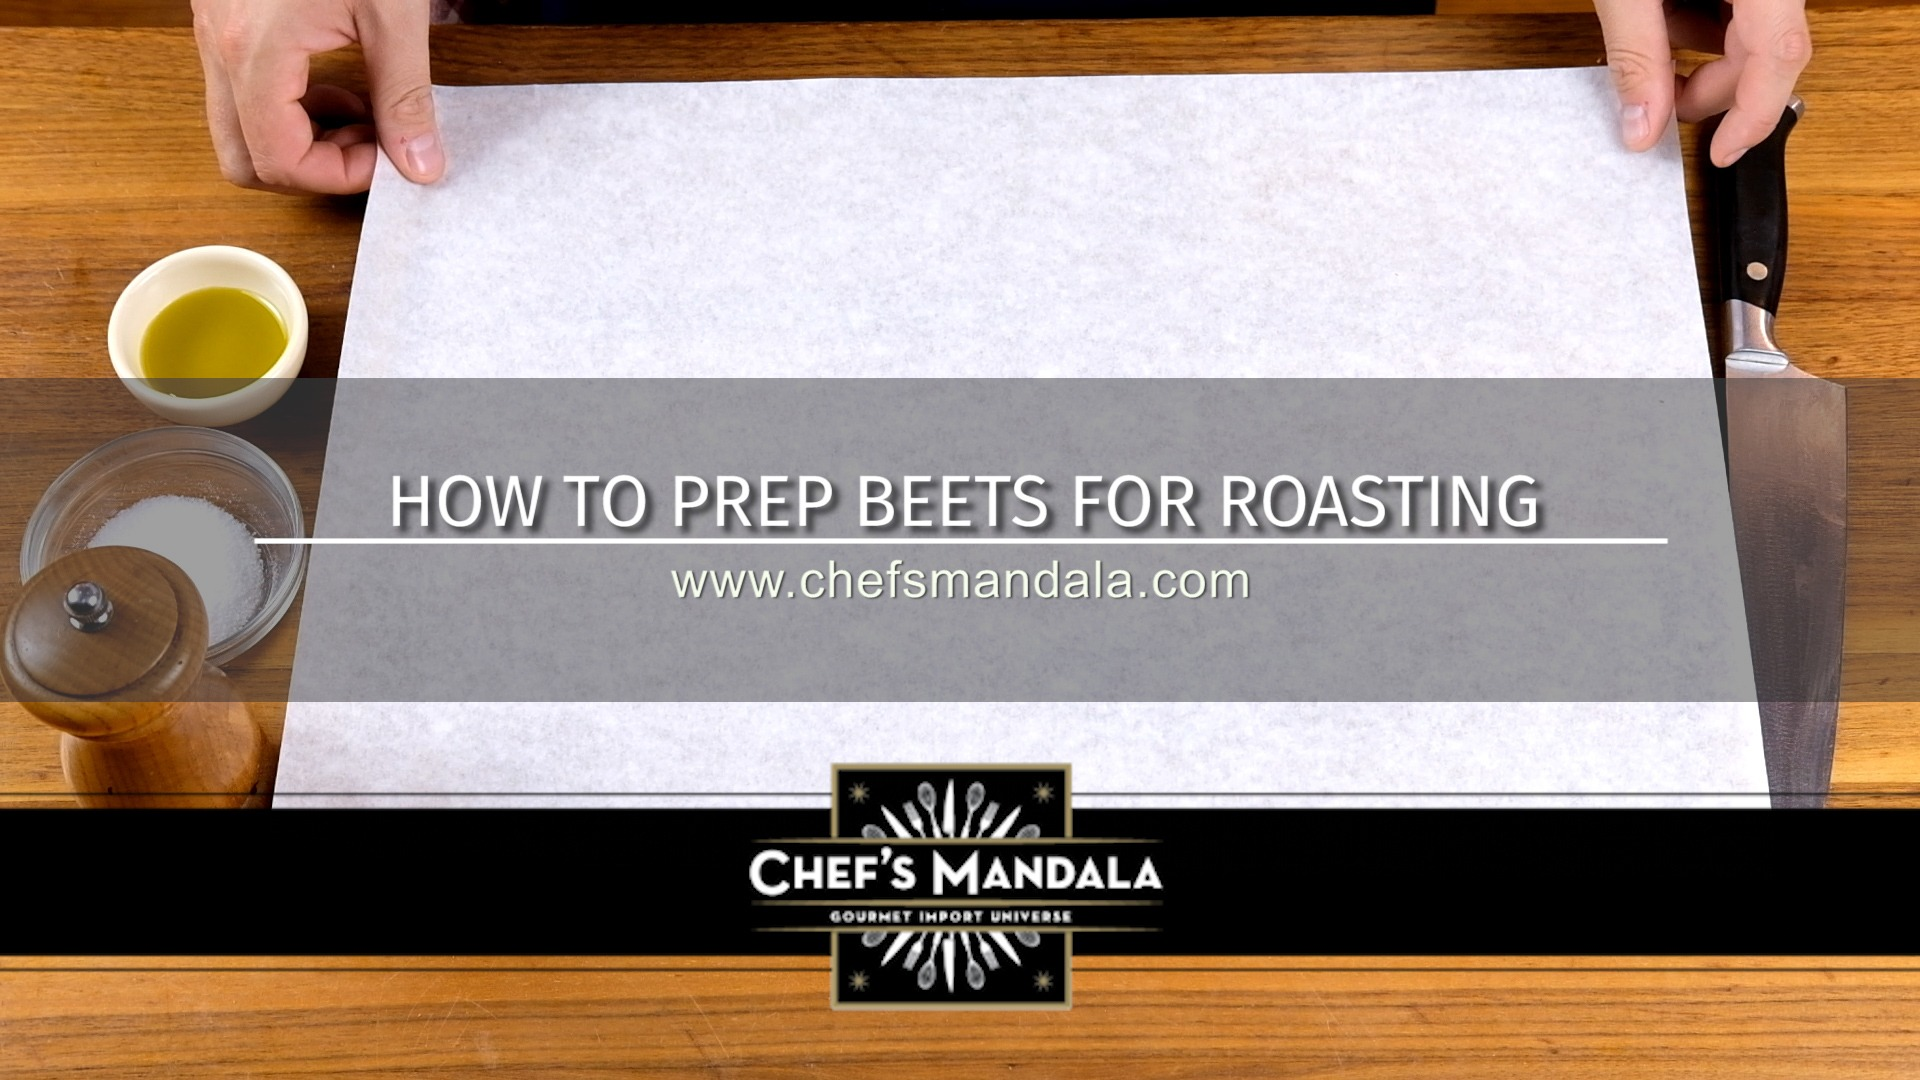 HOW TO PREP BEETS FOR ROASTING